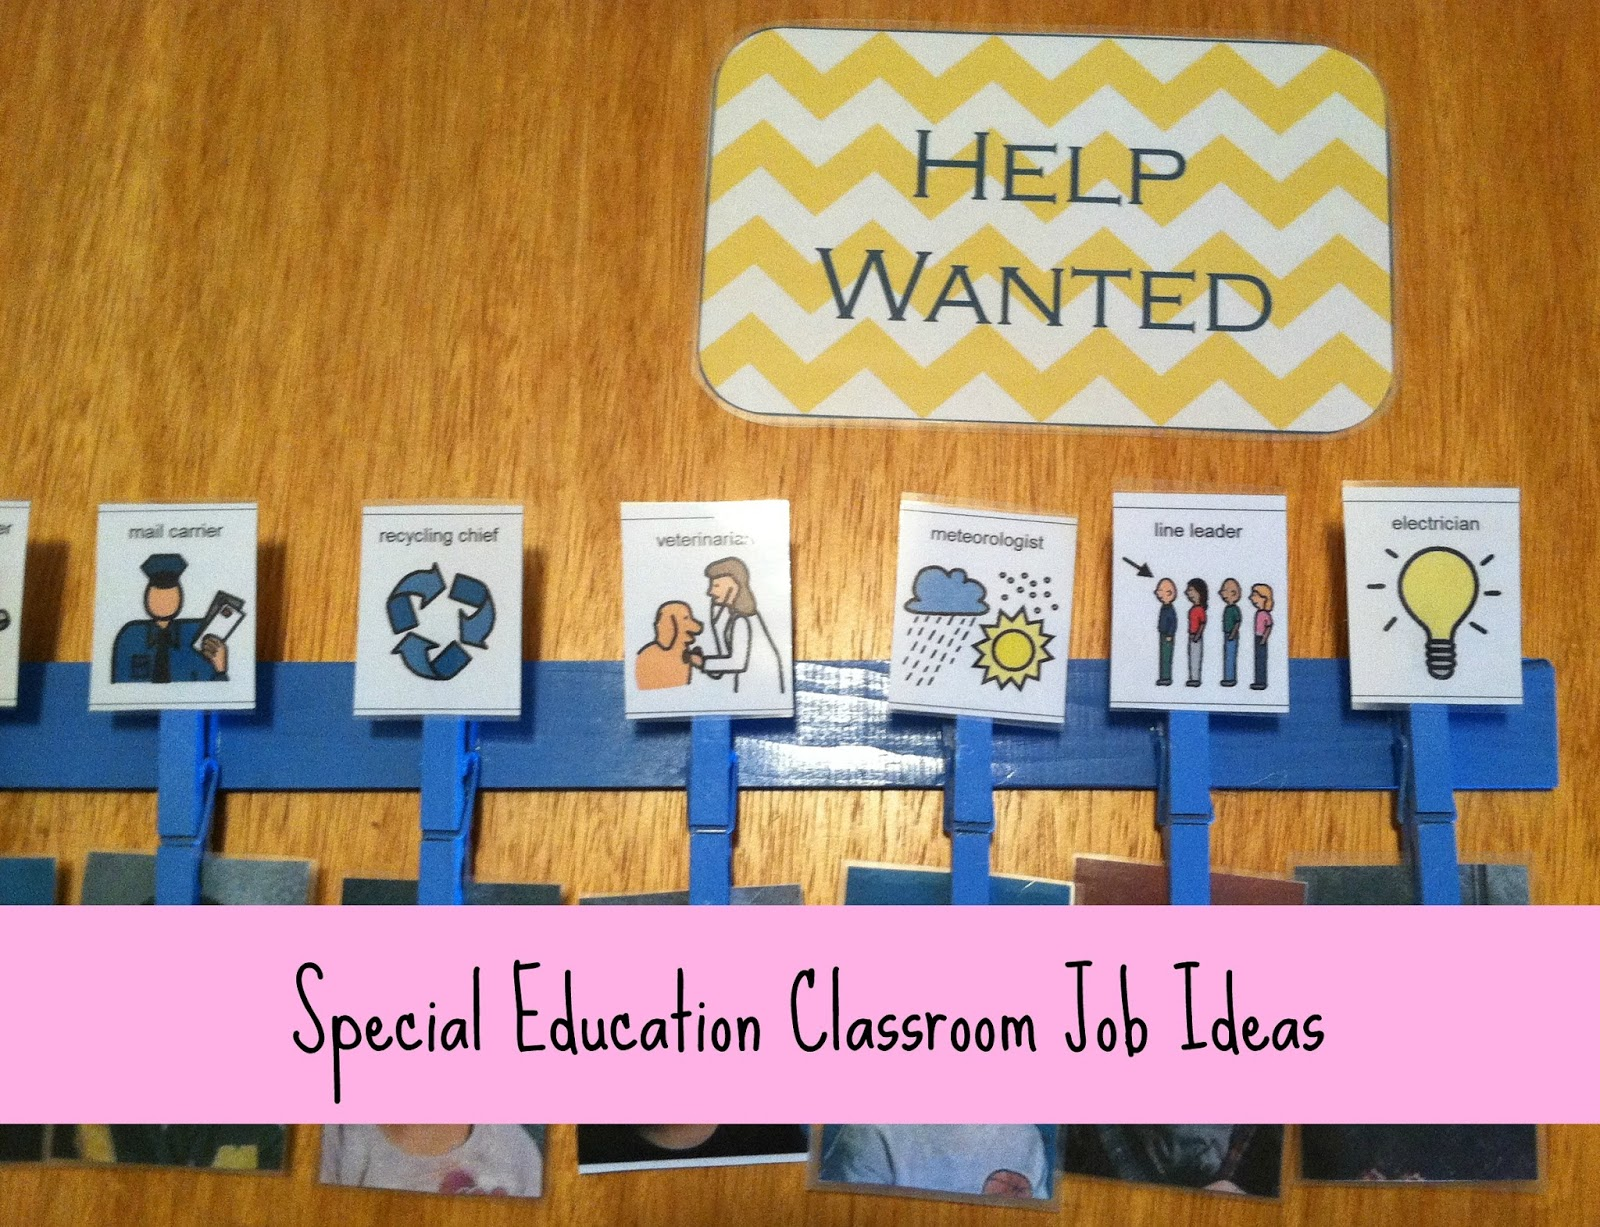 Classroom Layout Ideas For Special Education ~ Little miss kim s class special education classroom job